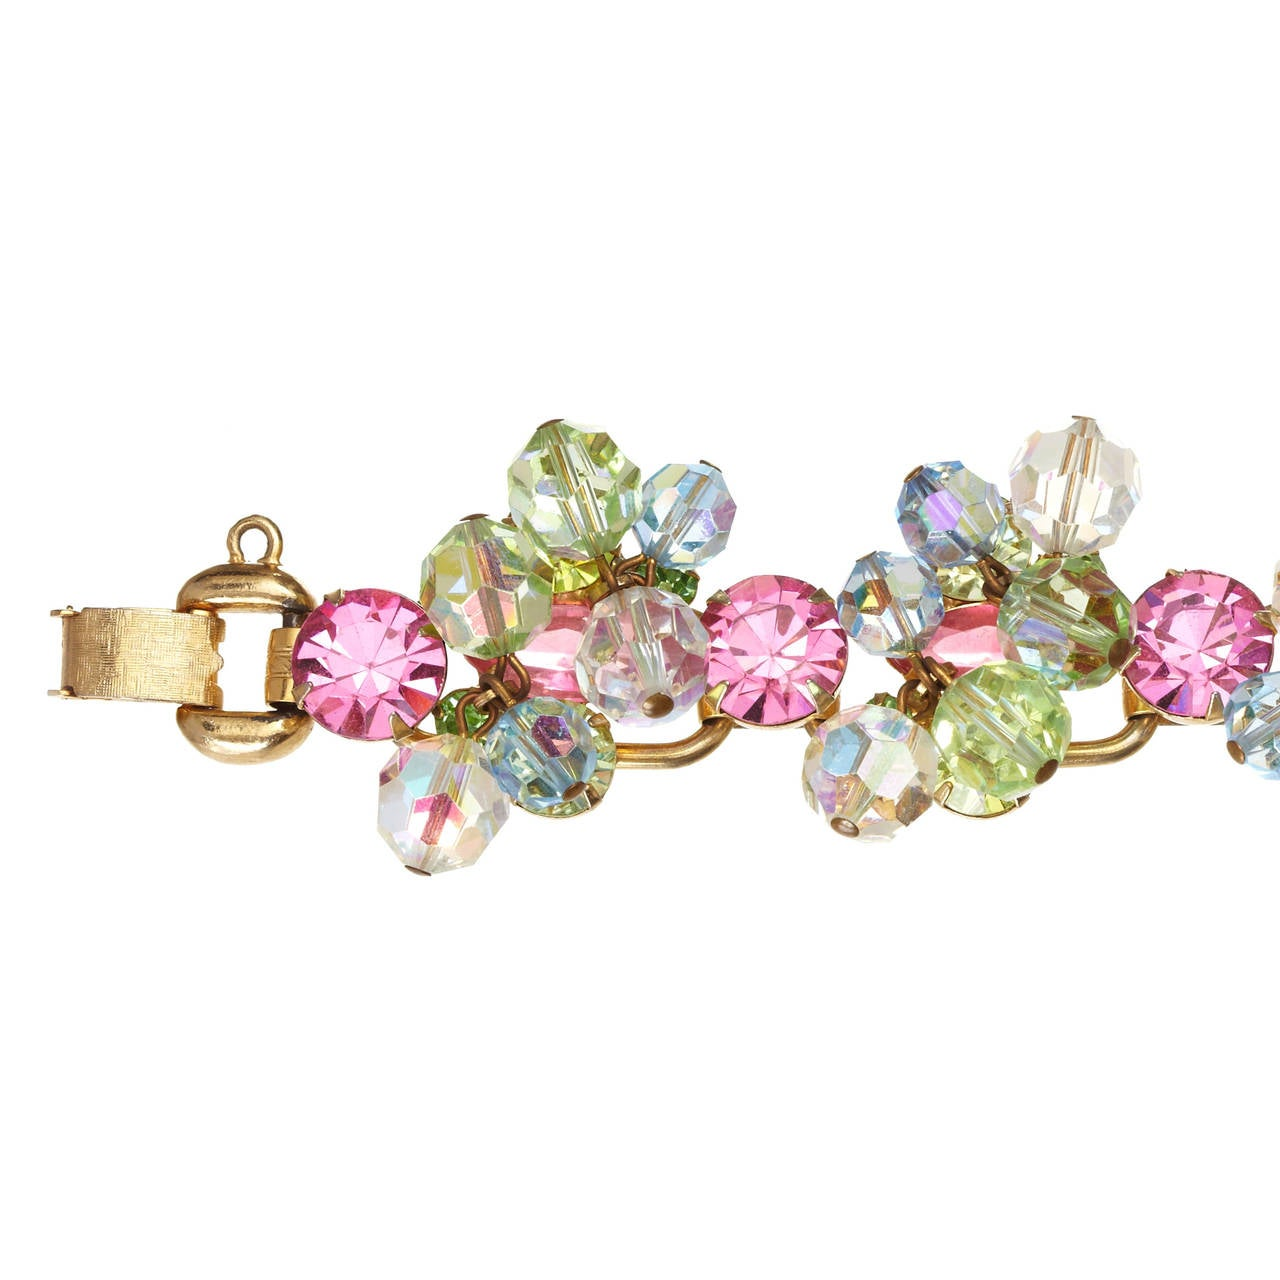 A delightful bracelet by Juliana featuring clusters of pastel coloured Swarovski rhinestones in Pink, Green, Yellow, Blue and Crystal AB.